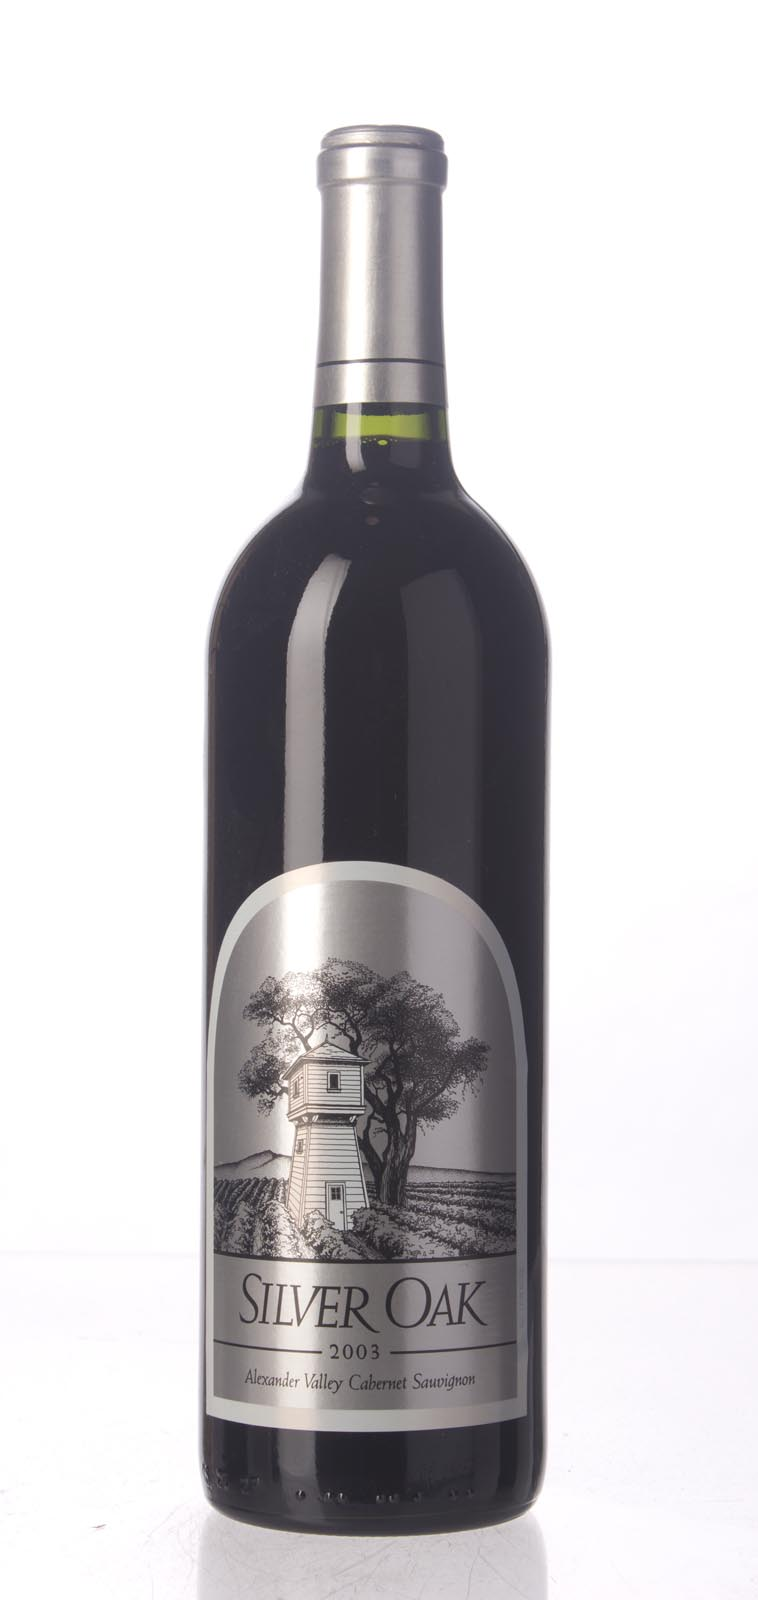 Silver Oak Cabernet Sauvignon Alexander Valley 2003, 750mL () from The BPW - Merchants of rare and fine wines.